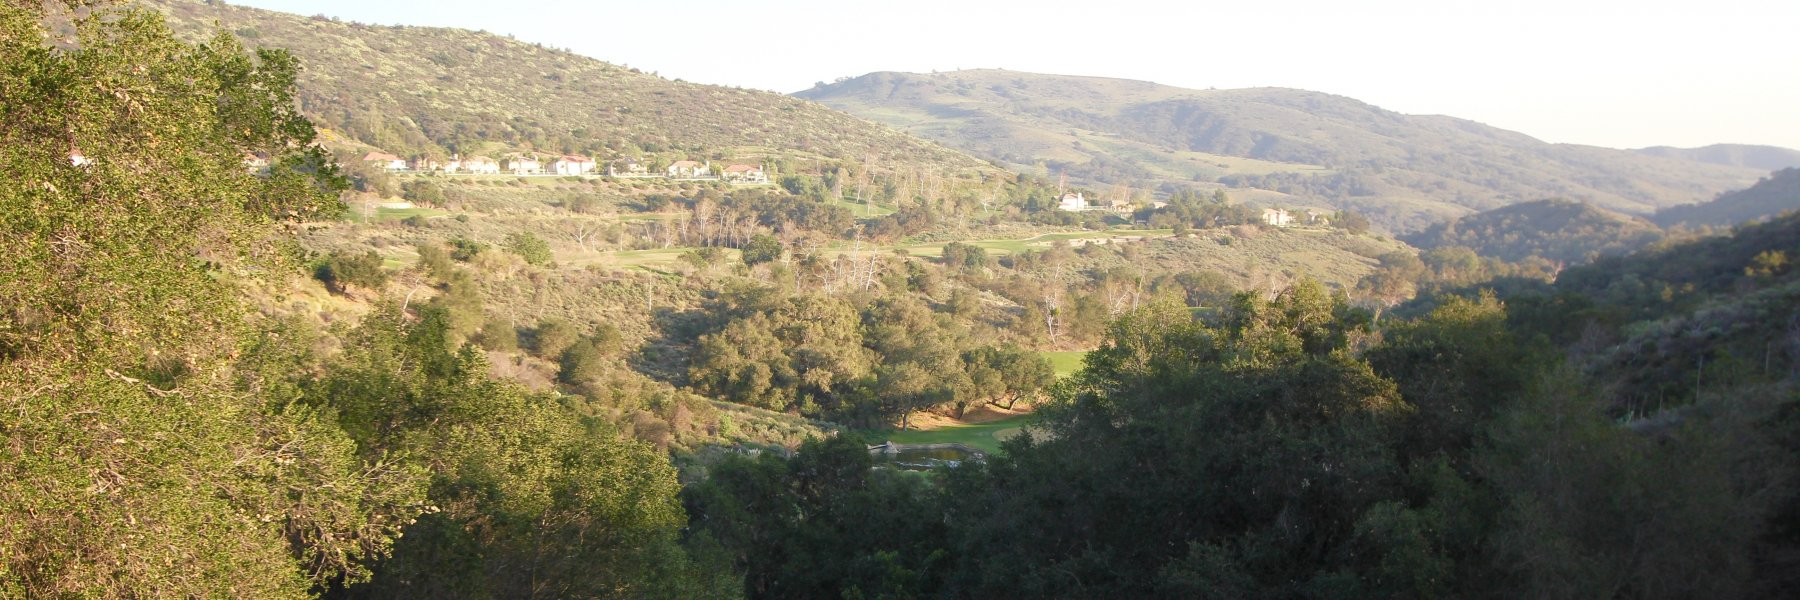 Dove Canyon is a community of homes in Rancho Santa Margarita California